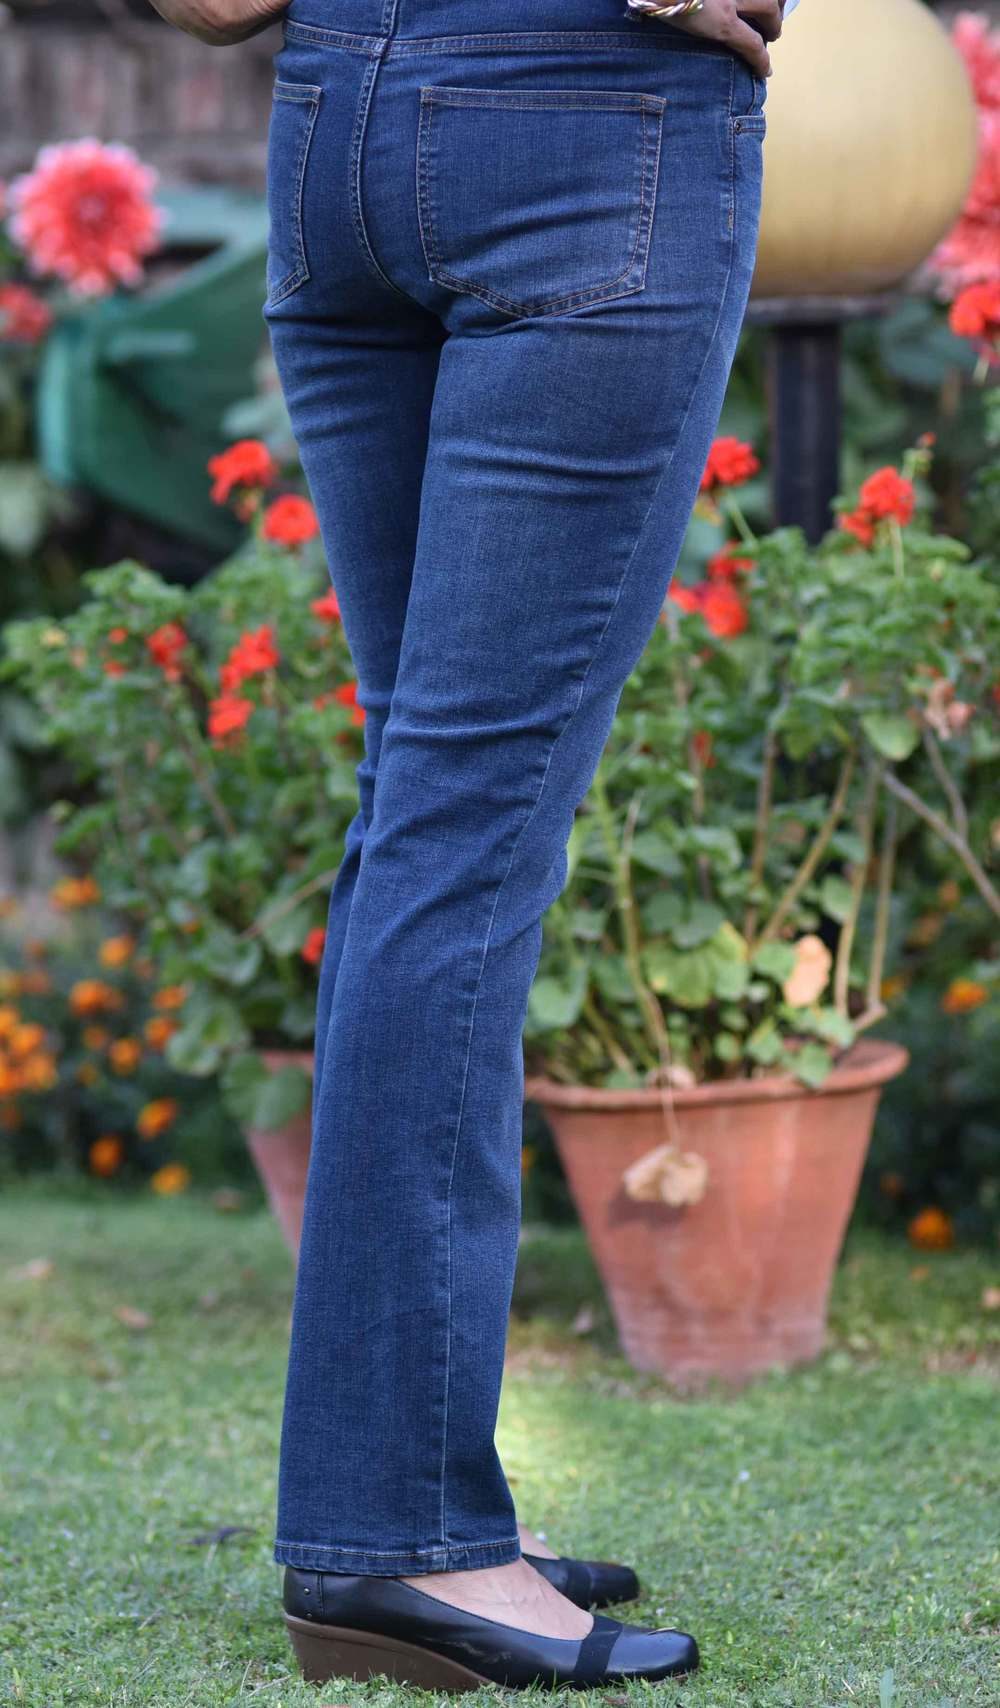 I look good in the JJill Smooth Fit Straight Leg Jeans! Image©gunjanvirk